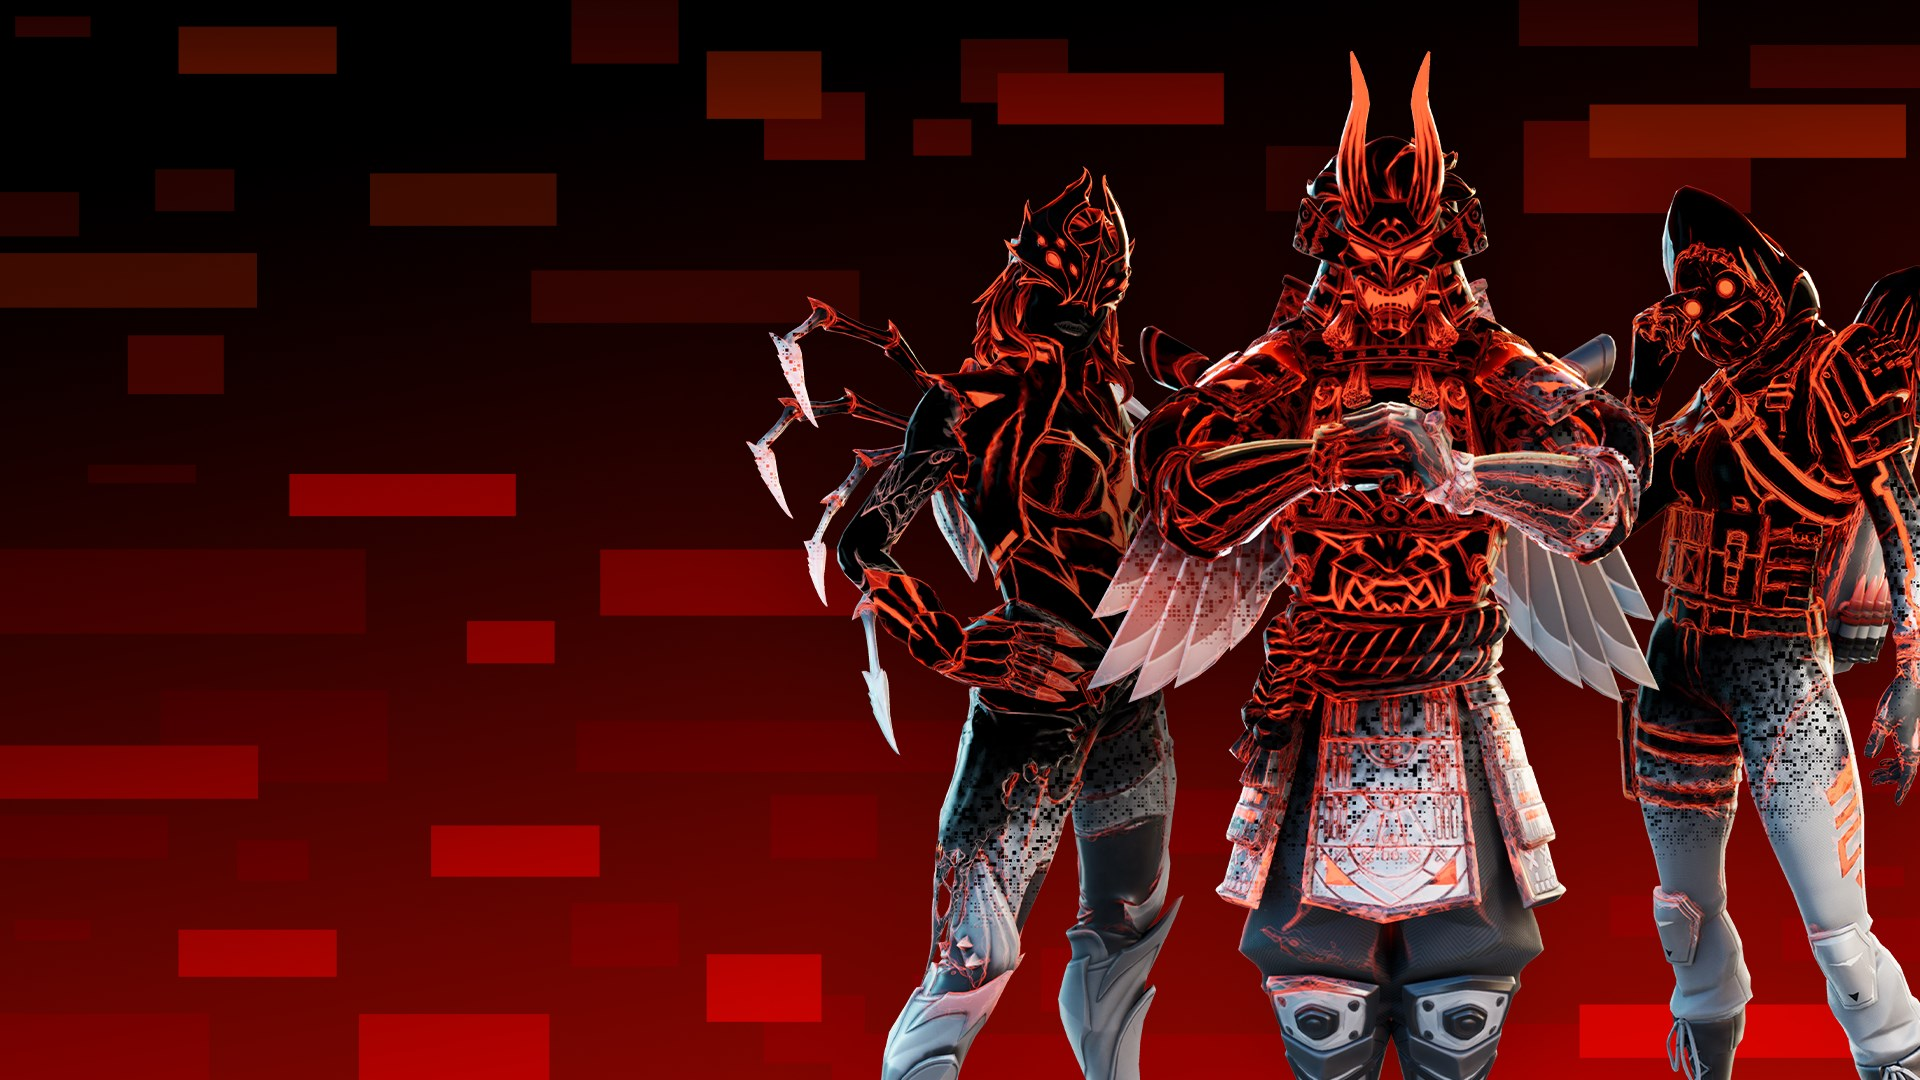 Fortnite Black Legends Bundle The Corrupted Legends Come To Fortnite Thexboxhub